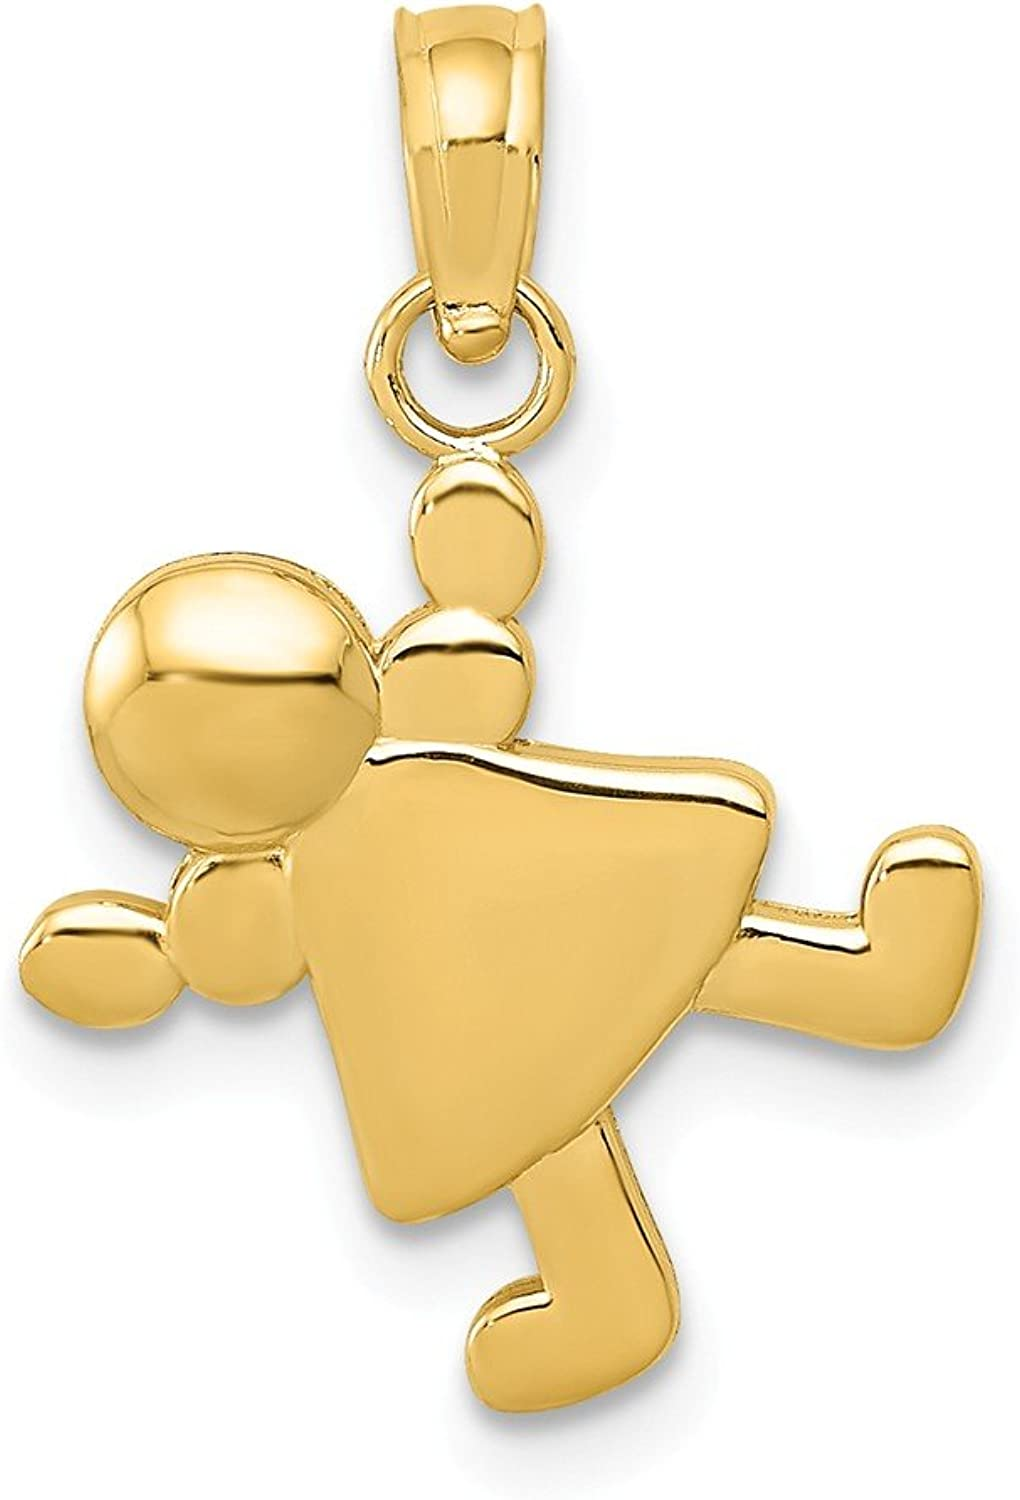 14k Yellow gold Little Girl Charm